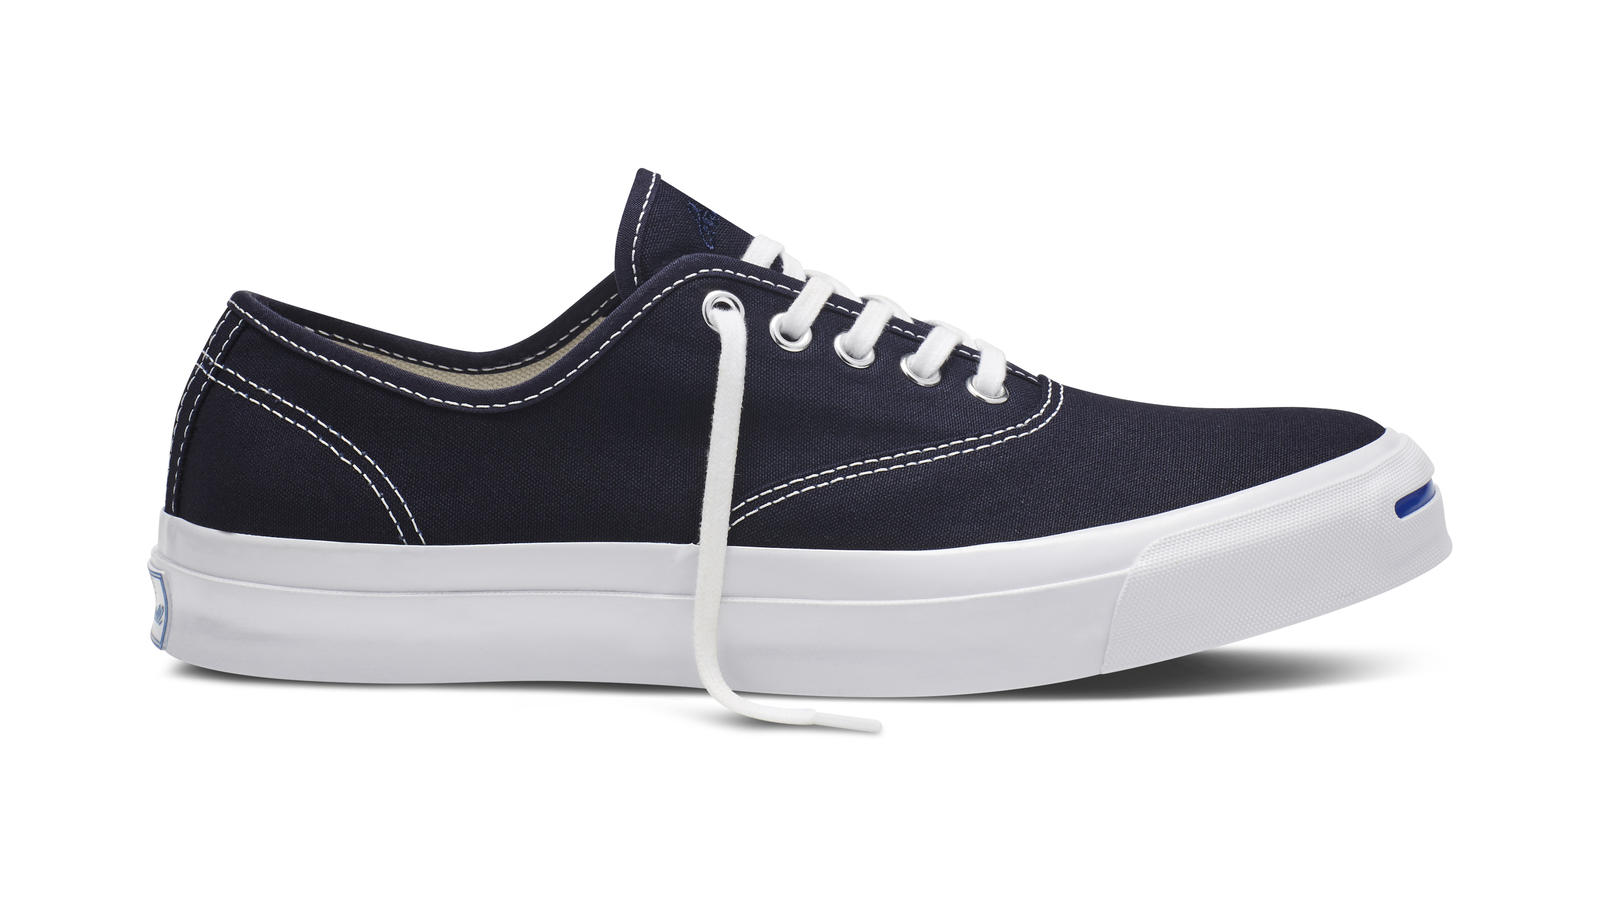 9b1159dc0a31cf CONVERSE JACK PURCELL CVO KEEPS IT CASUAL - Nike News